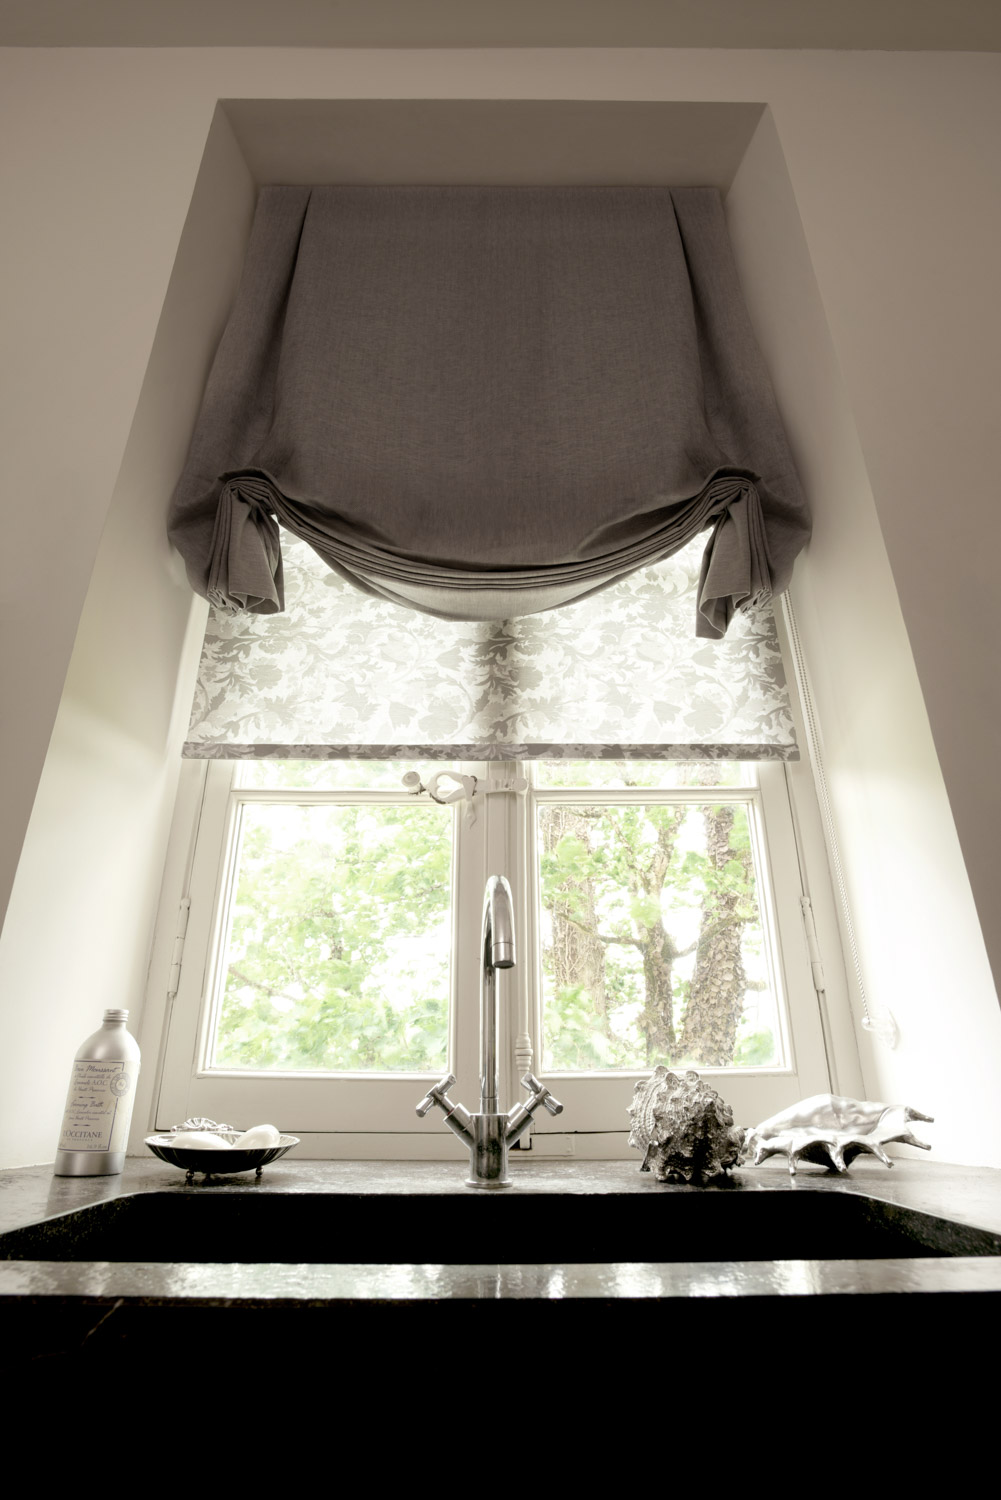 Try A Decorative Tulip Roman Shade In A Rich Fabric. You Can Even Layer It